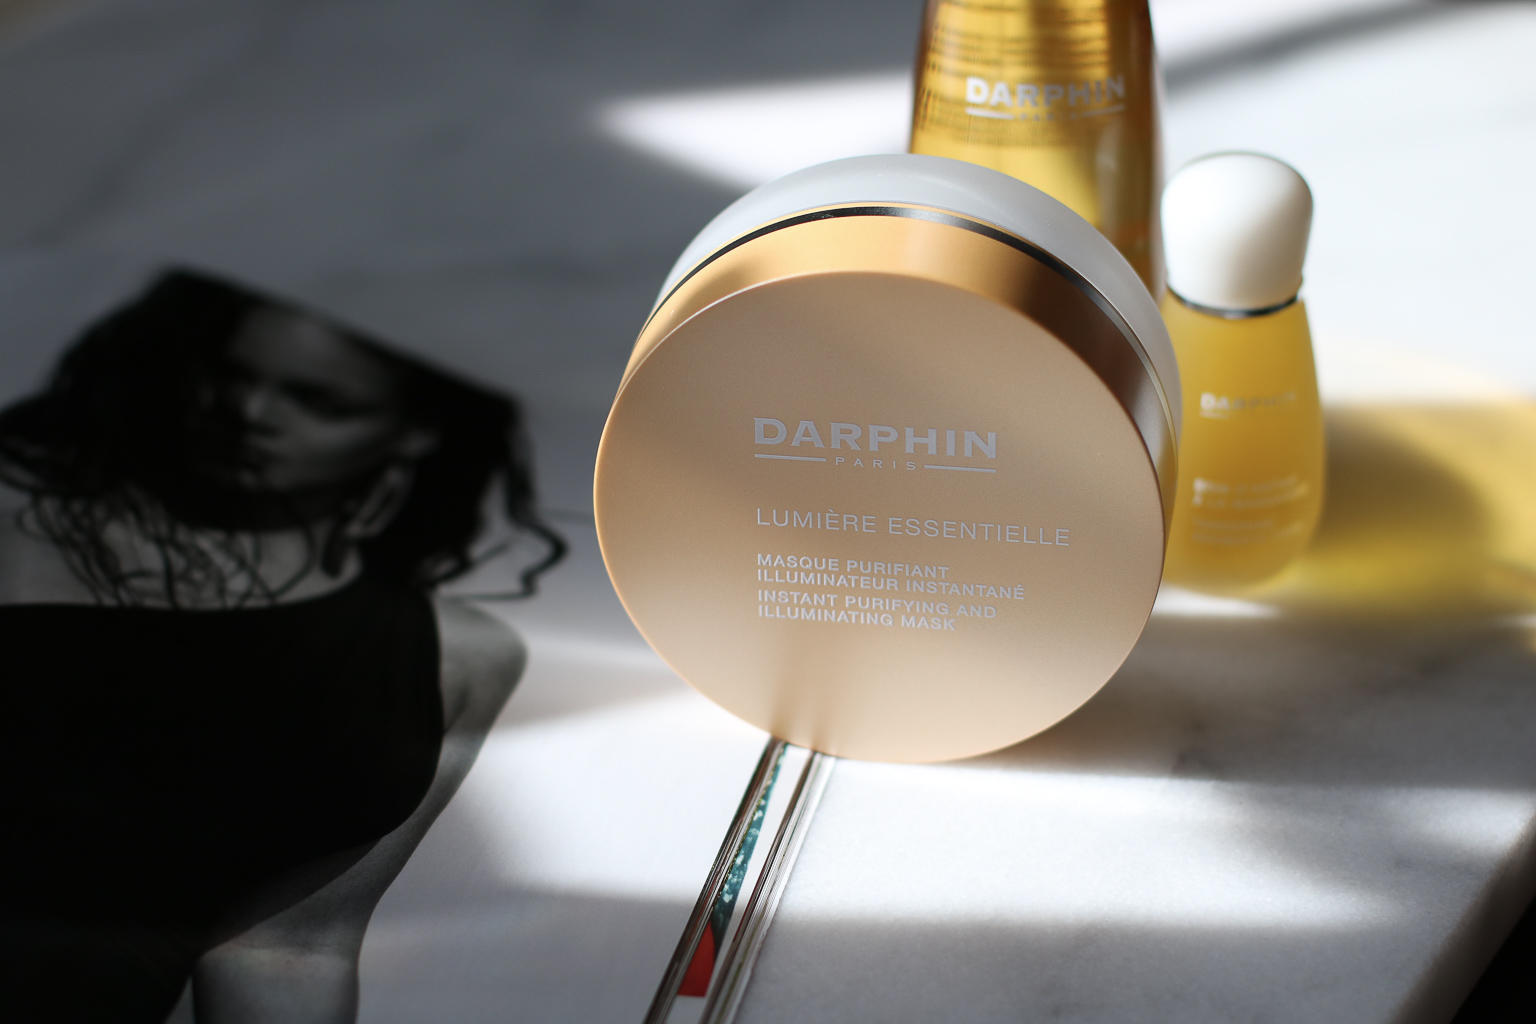 The Complete Guide To Perfect Summer Skin - Darphin | Style Domination by Dominique